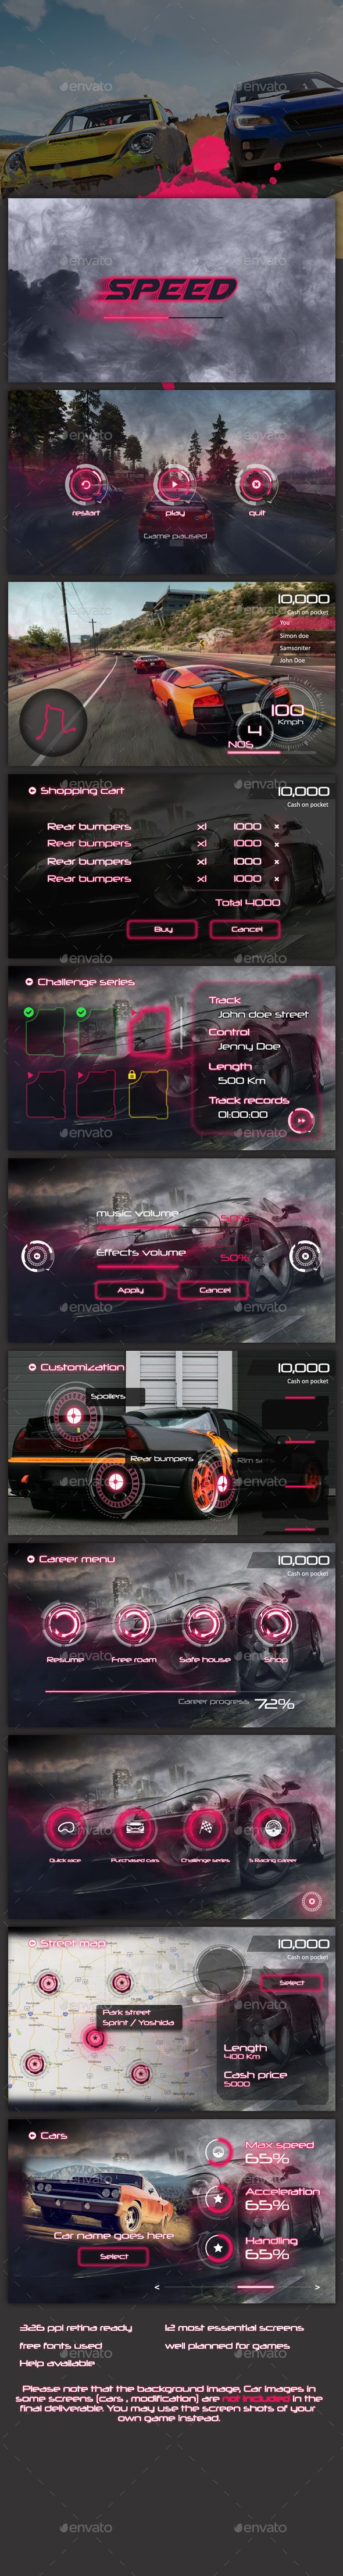 Sci-fi Racing Game UI PSD